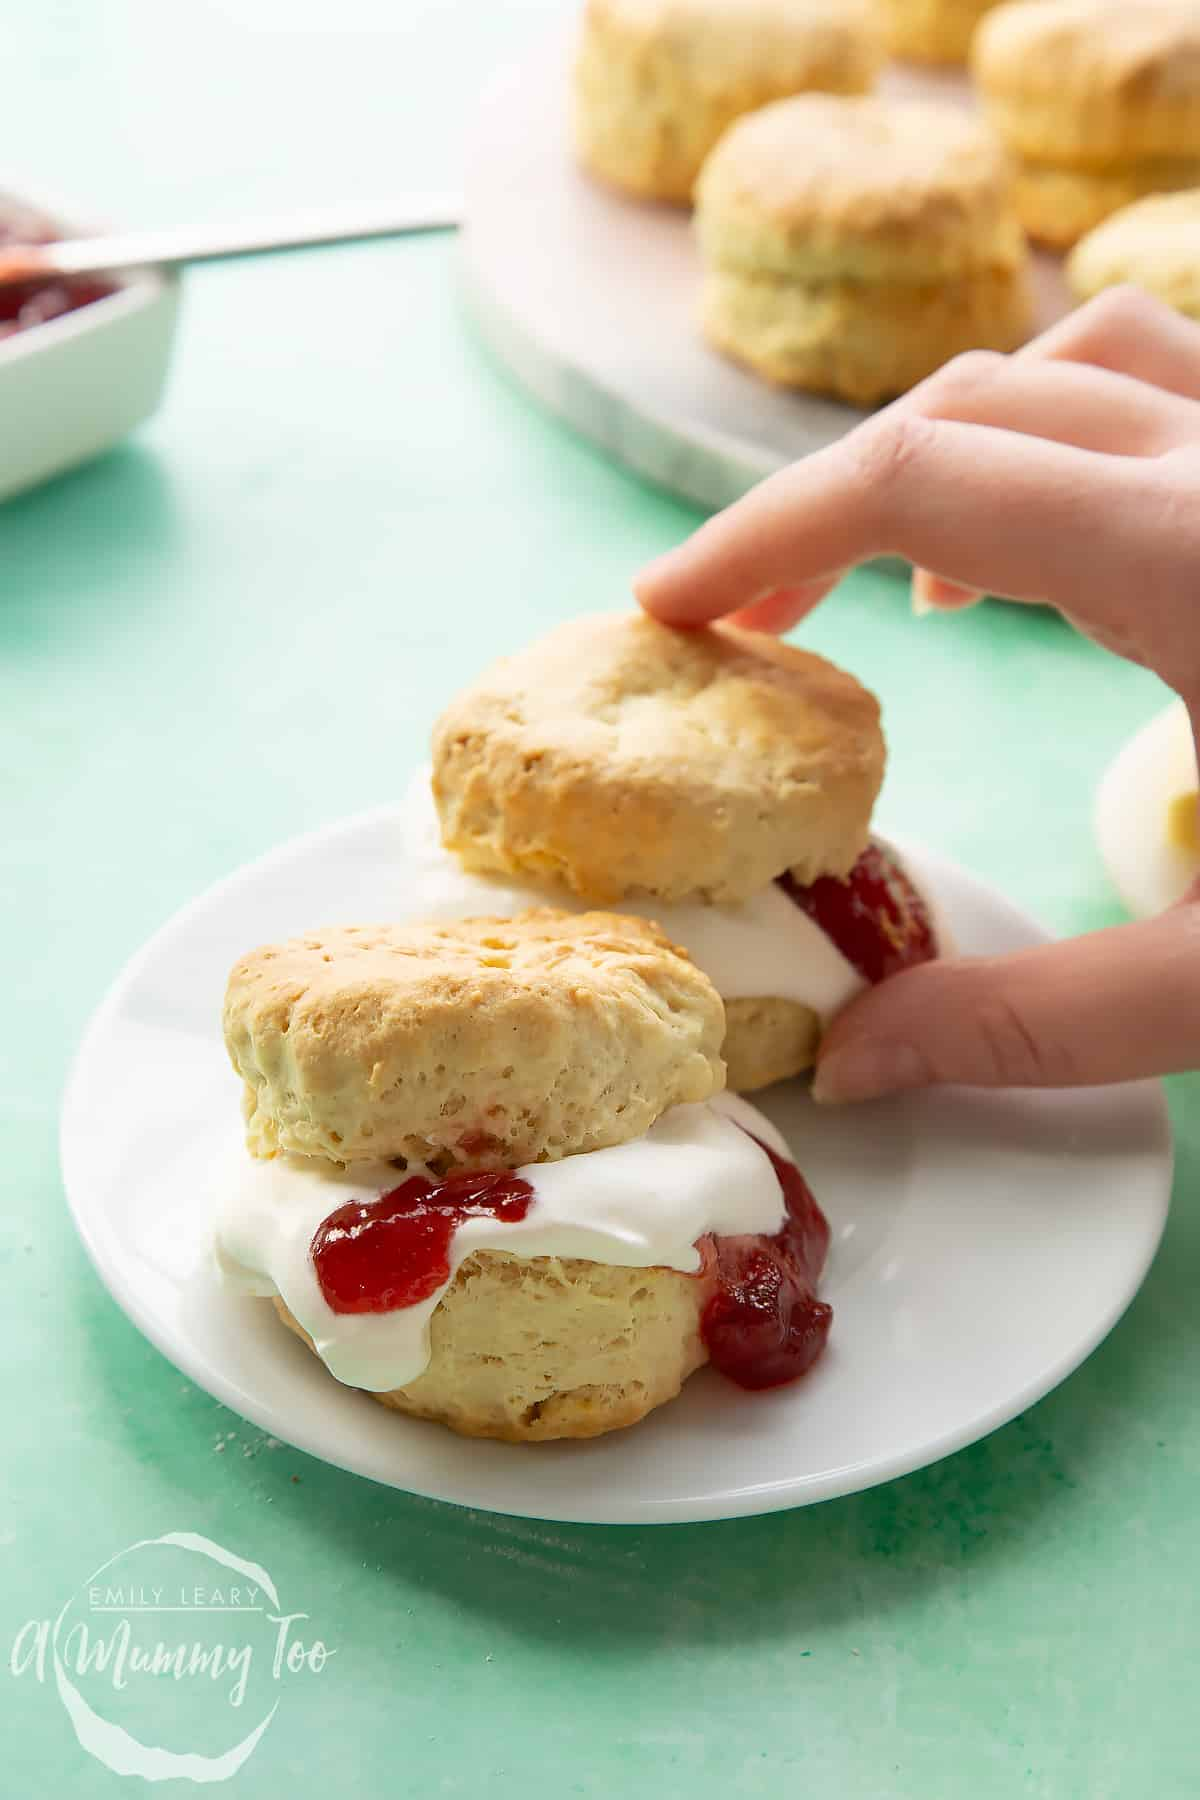 Two dairy free scones on a white plate. They are filled with jam and vegan whipped cream. A hand reaches for one.